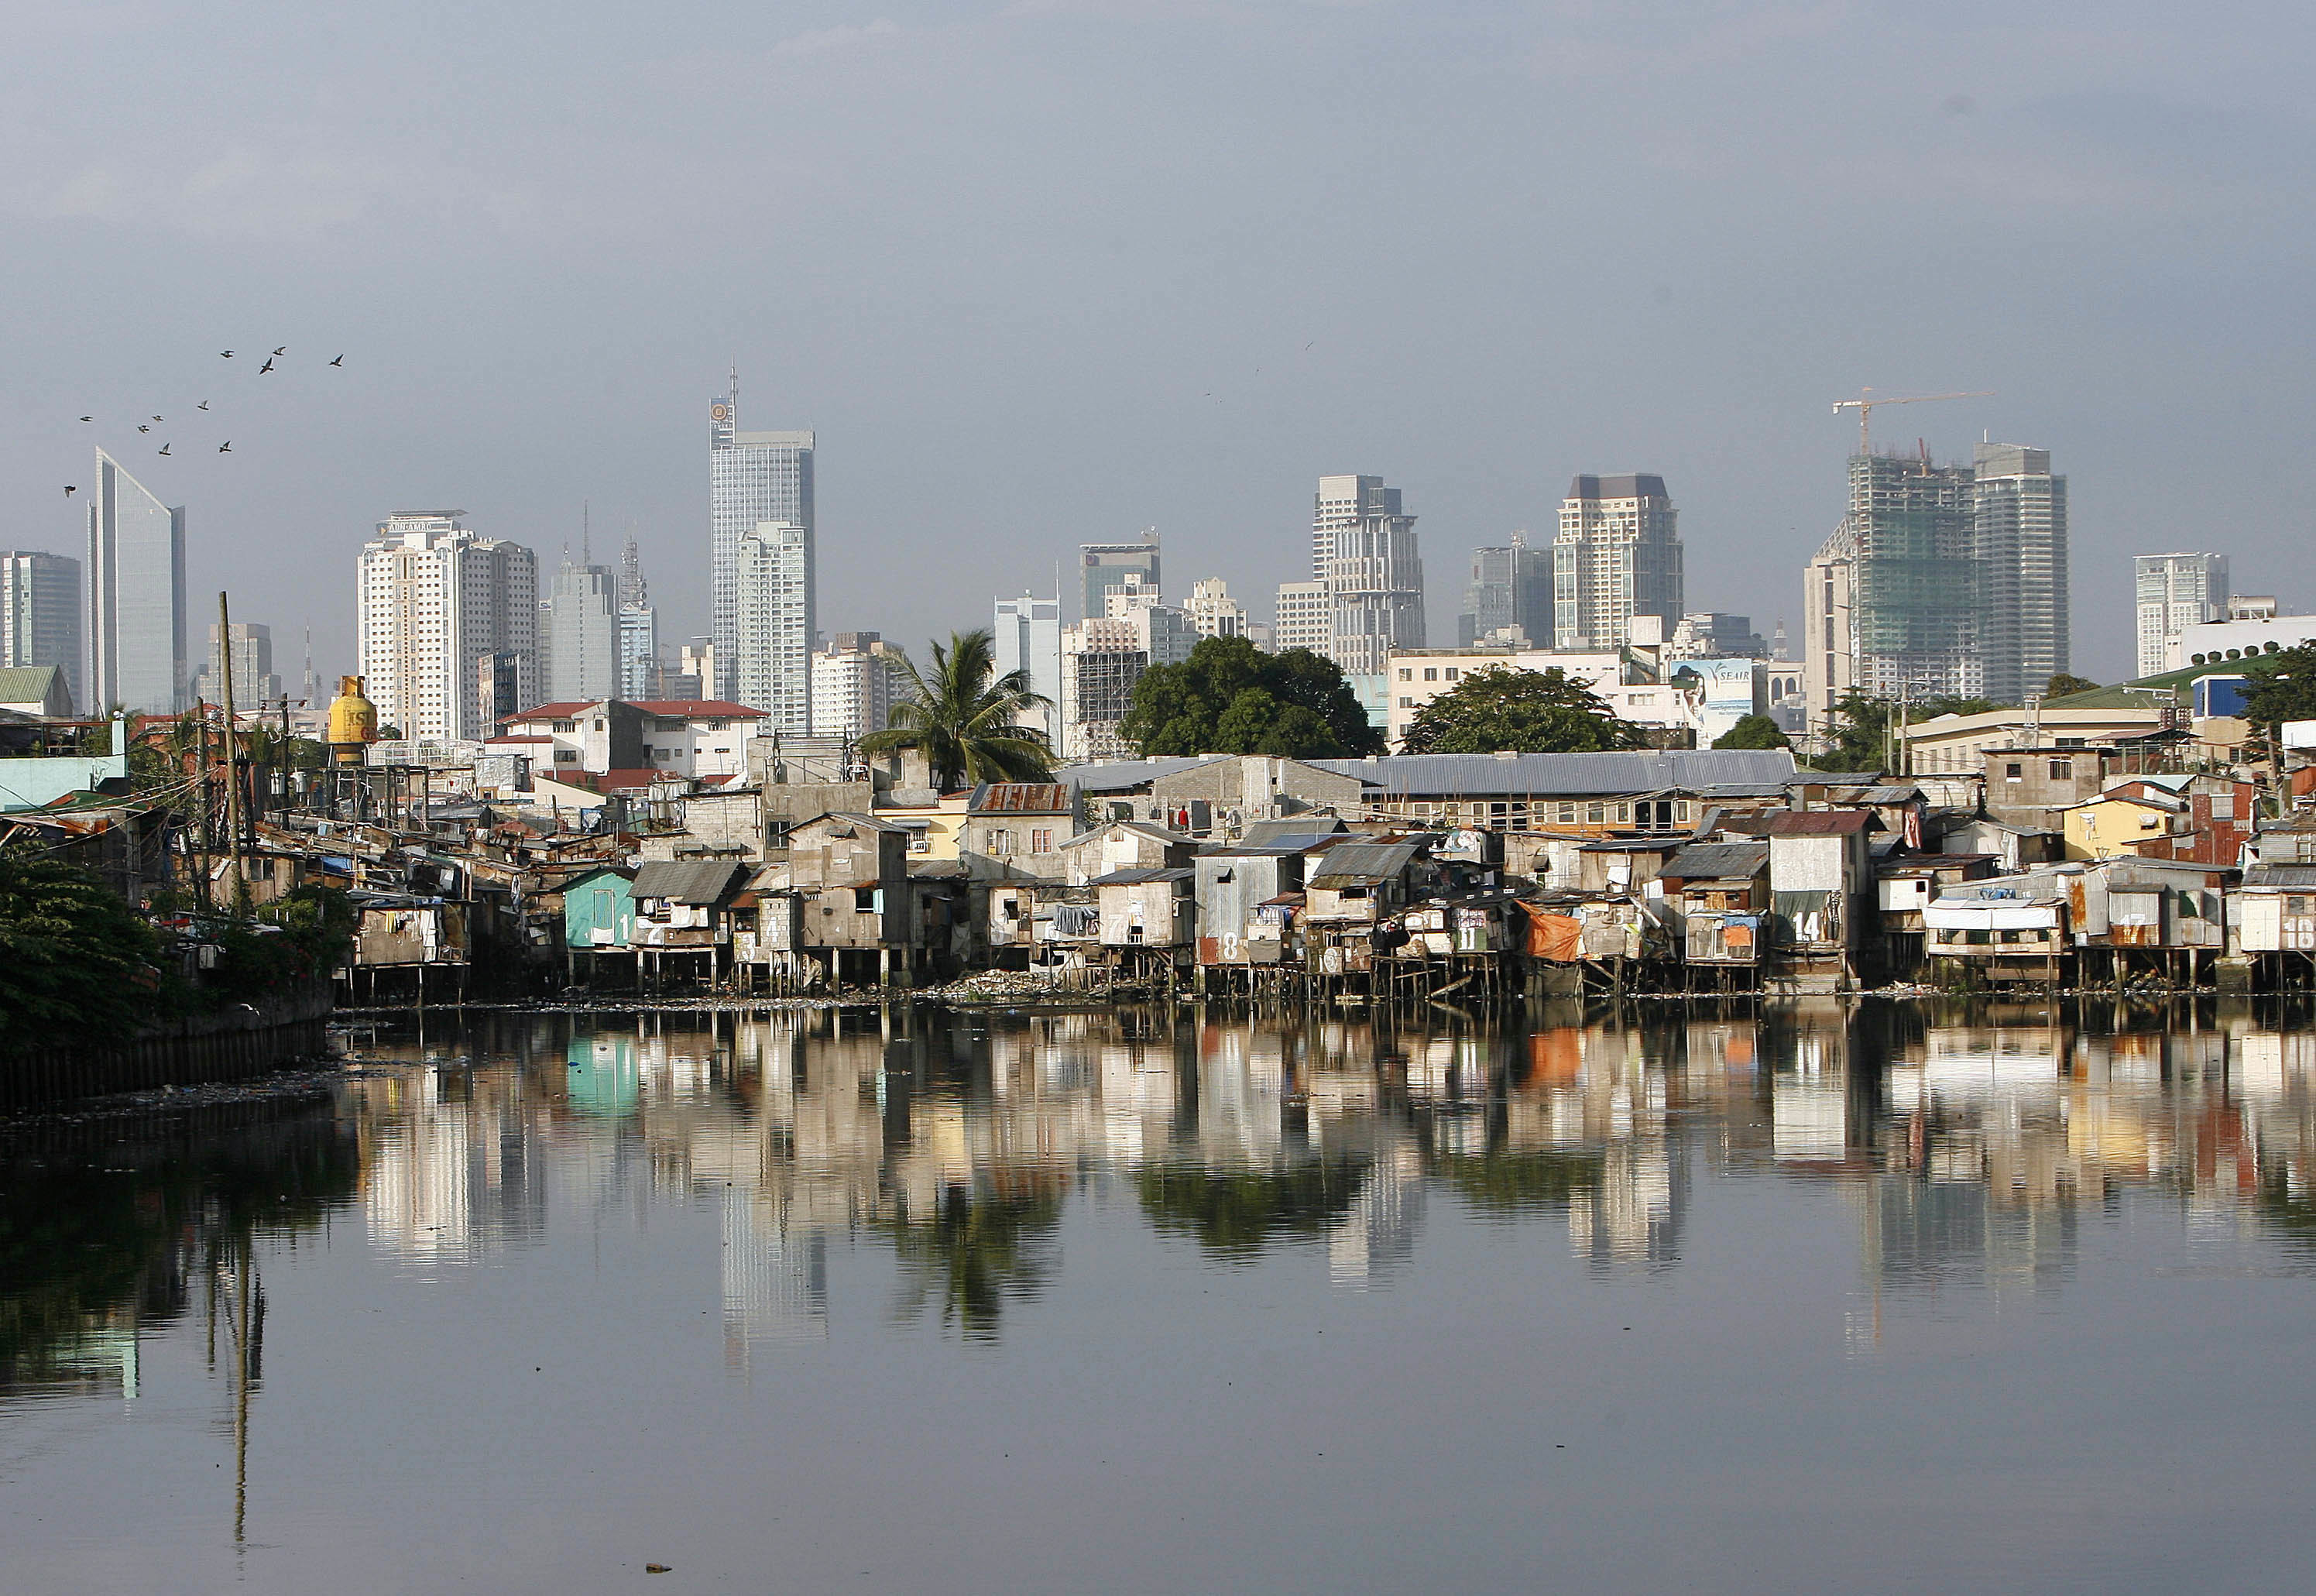 Slums are seen along a river with the skyline of Makati, Manila's financial district, in the background October 8, 2007. Developing countries in Asia are struggling to meet the UN-set millennium goals although the region is on course to cut extreme poverty, a report released on Monday showed.